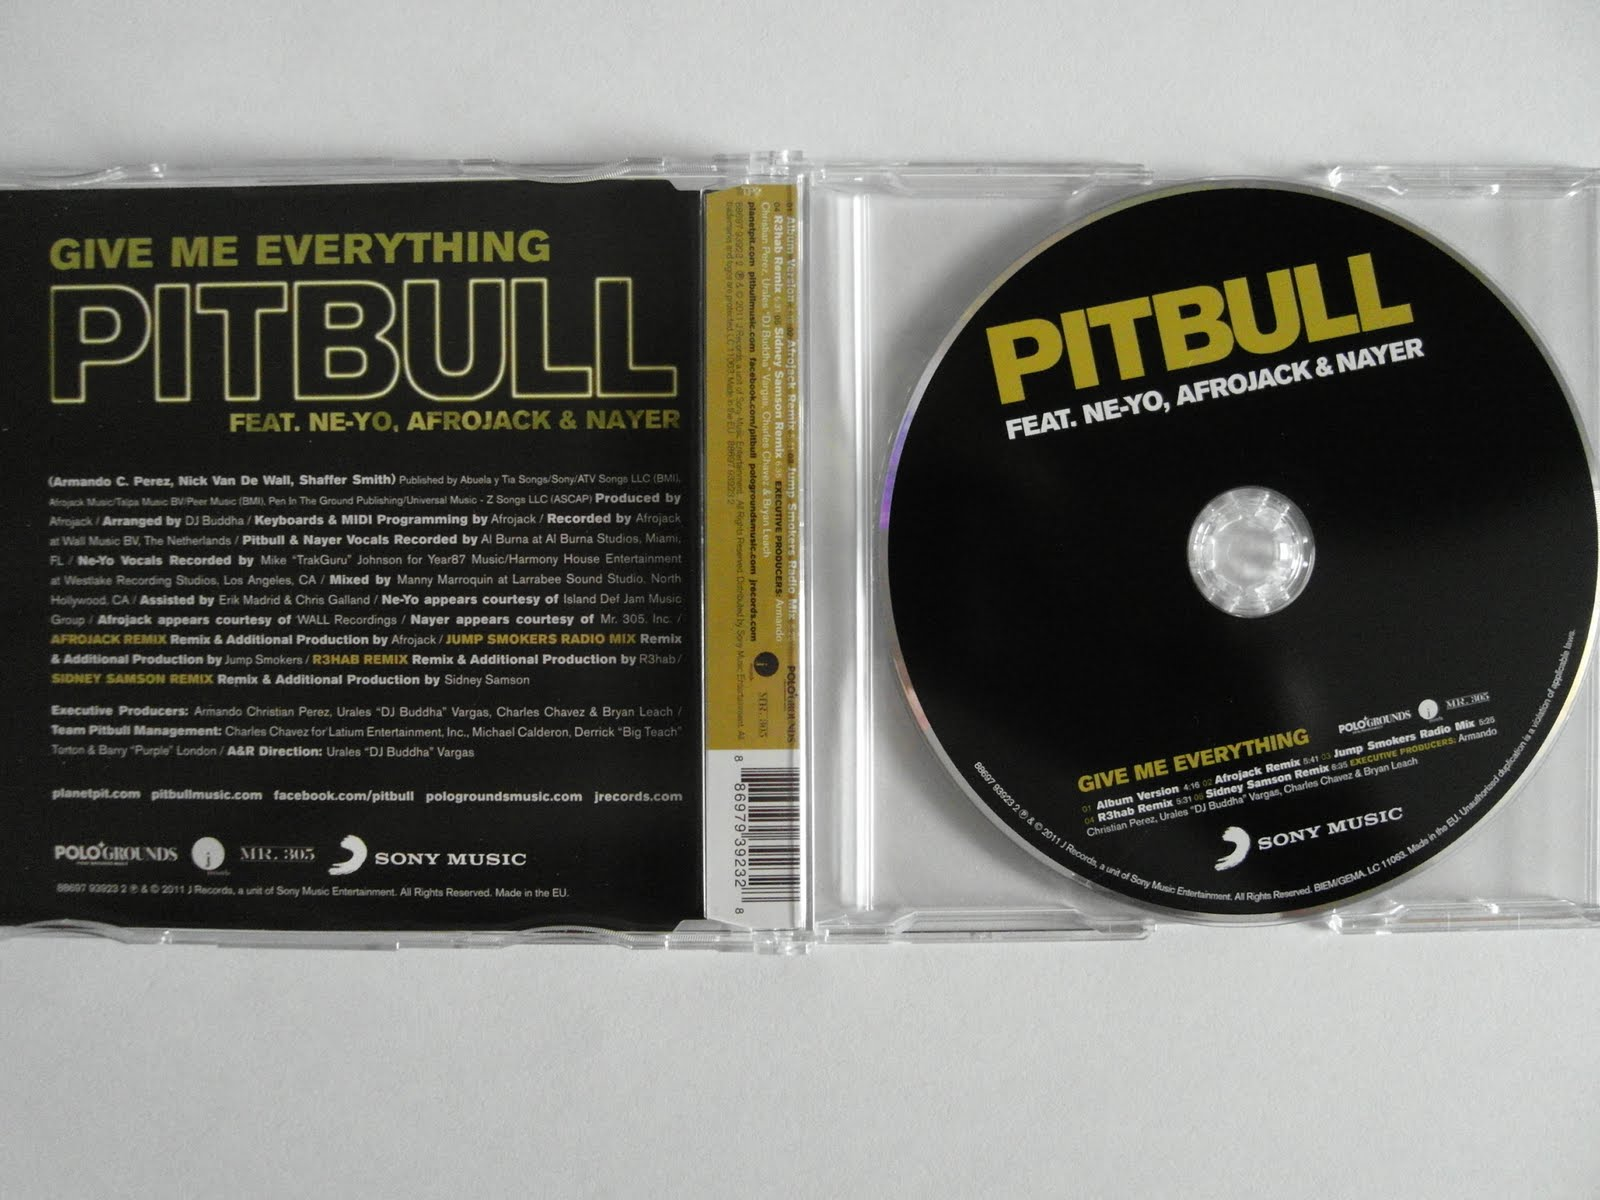 http://1.bp.blogspot.com/-PxEvsbMYJws/TgyUtgZYyyI/AAAAAAAAKuI/EPOtz2A-Sp8/s1600/00-pitbull_feat_ne-yo_afrojack_and_nayer_-_give_me_everything__incl_sidney_samson_remix-cdm-2011-cover.jpg